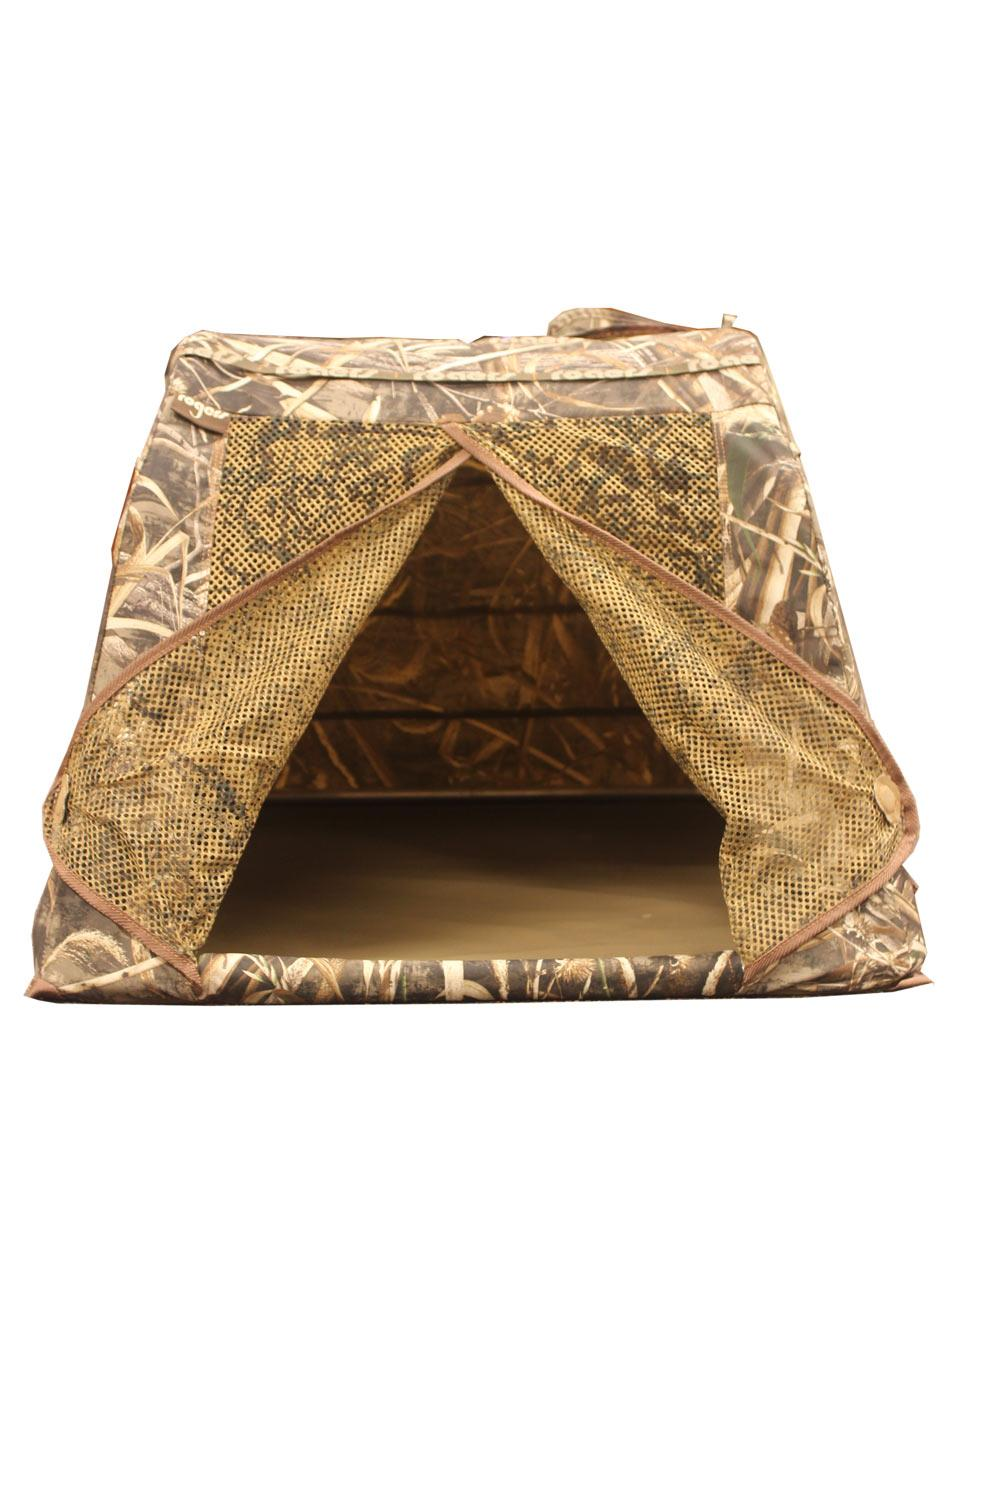 Rogers Pooch Palace XL Dog Blind in Realtree Max 5_7.jpg